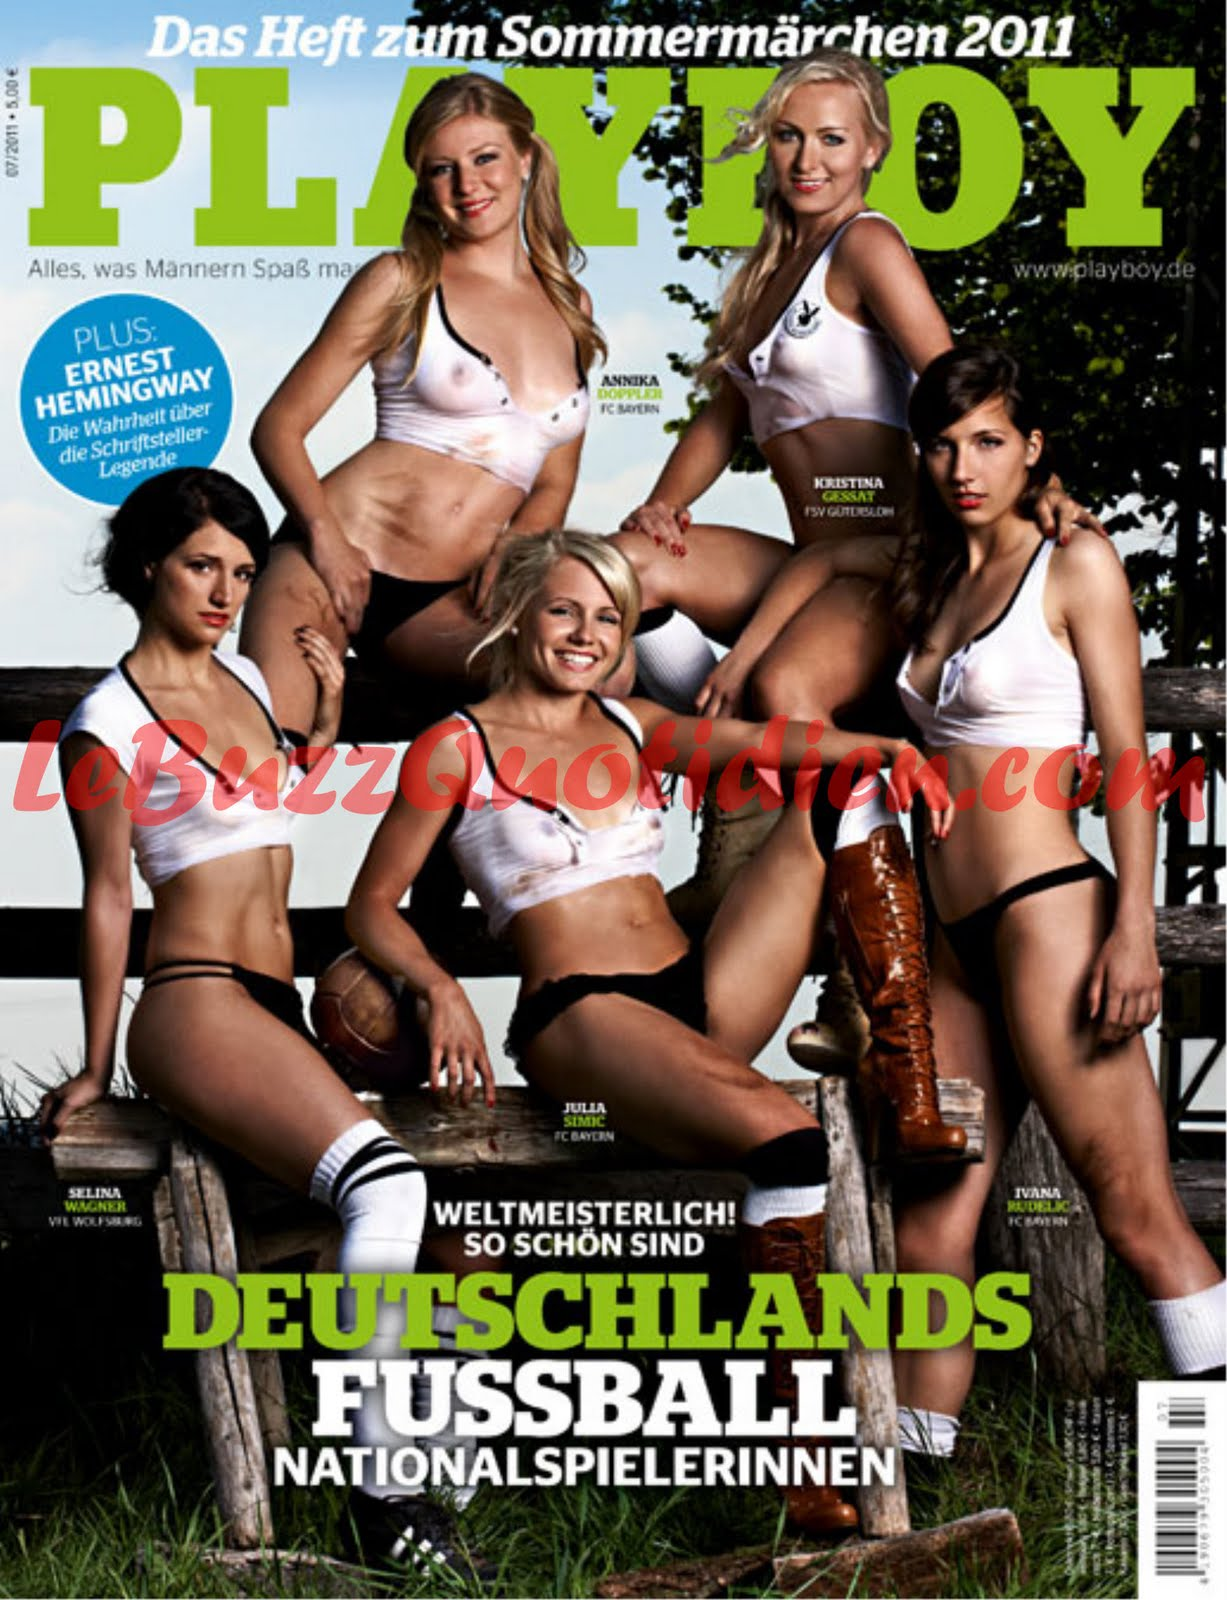 footballeuses allemandes nues playboy joueuses allemagne